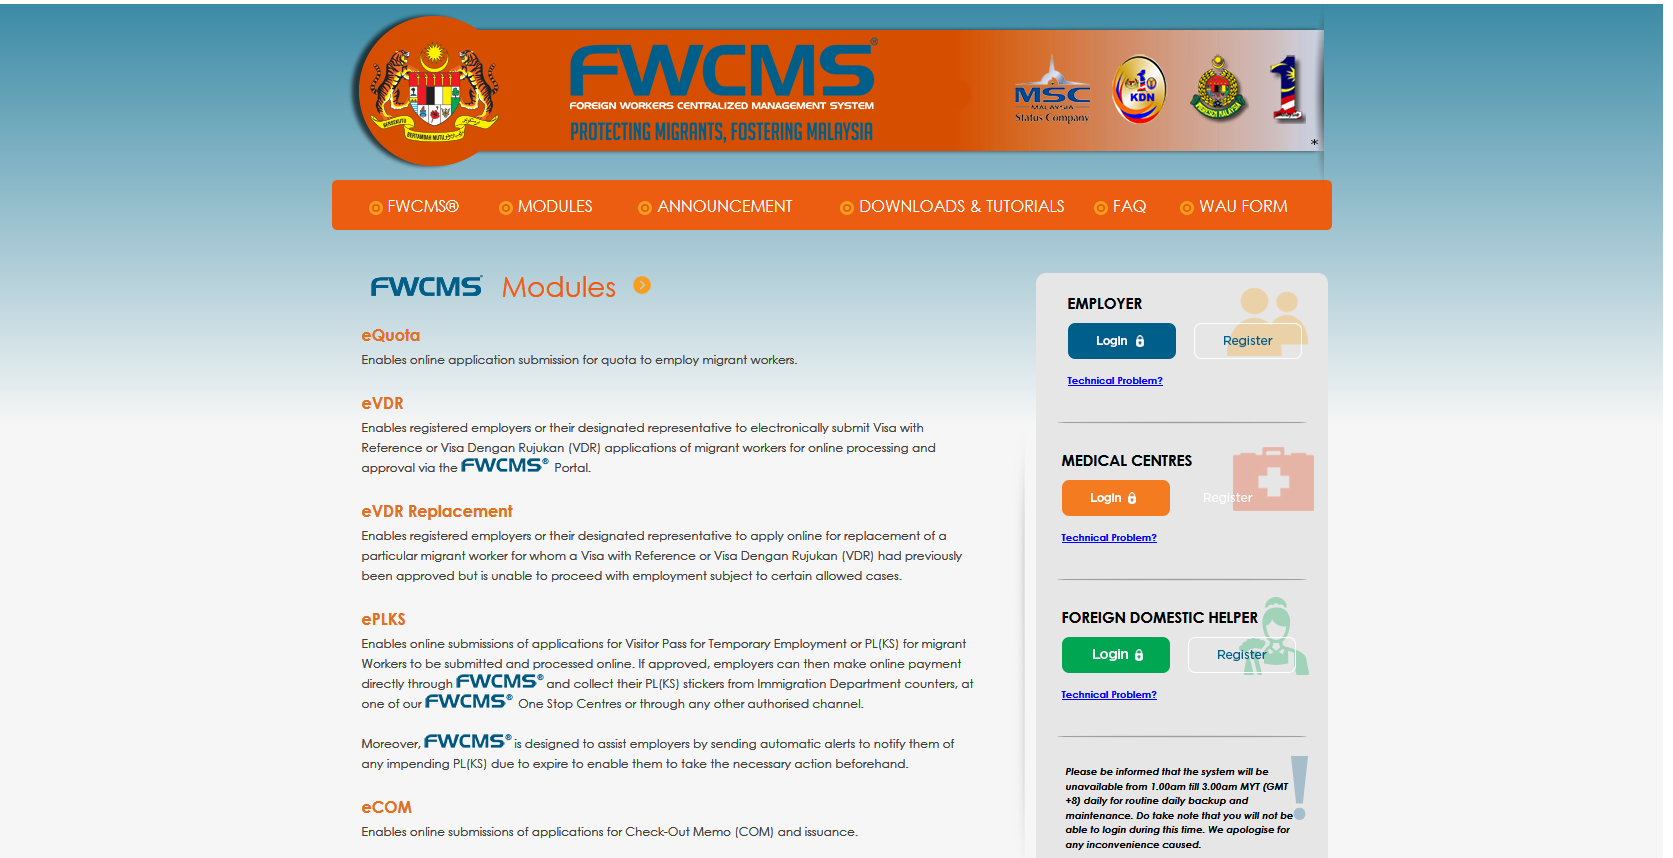 FWCMS - Modules